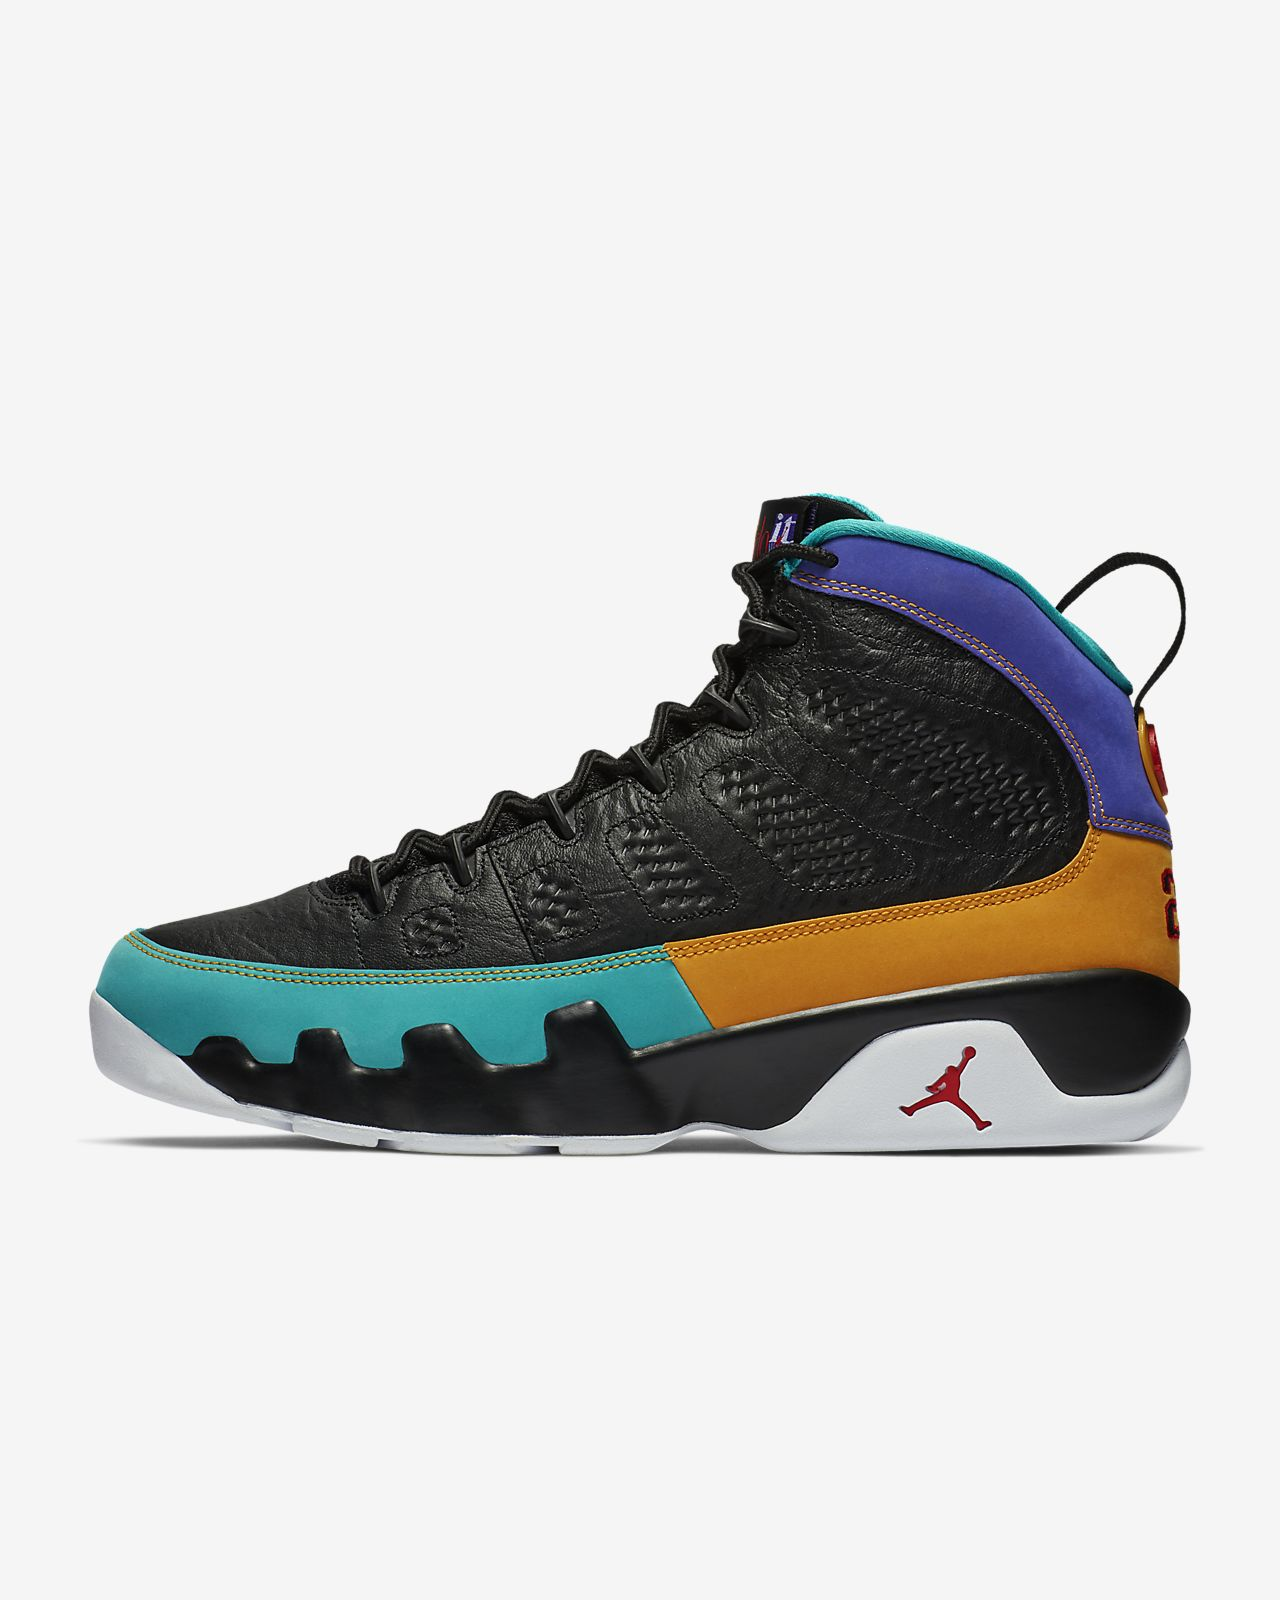 3225cbac252 Air Jordan 9 Retro Men's Shoe. Nike.com